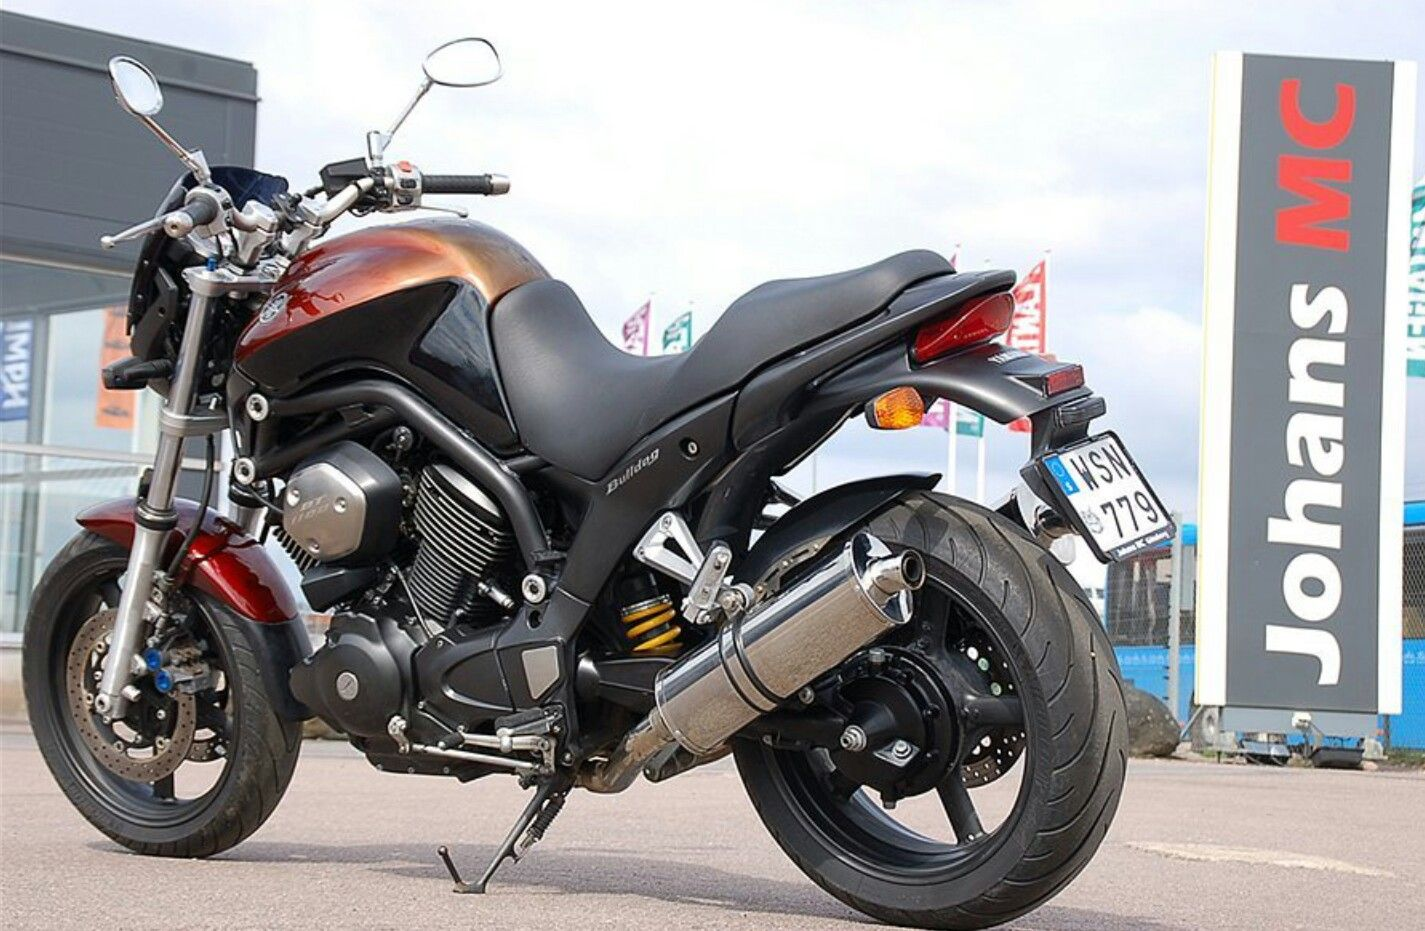 2005 Yamaha BT 1100 Bulldog. Sold mainly in Europe and  the UK.